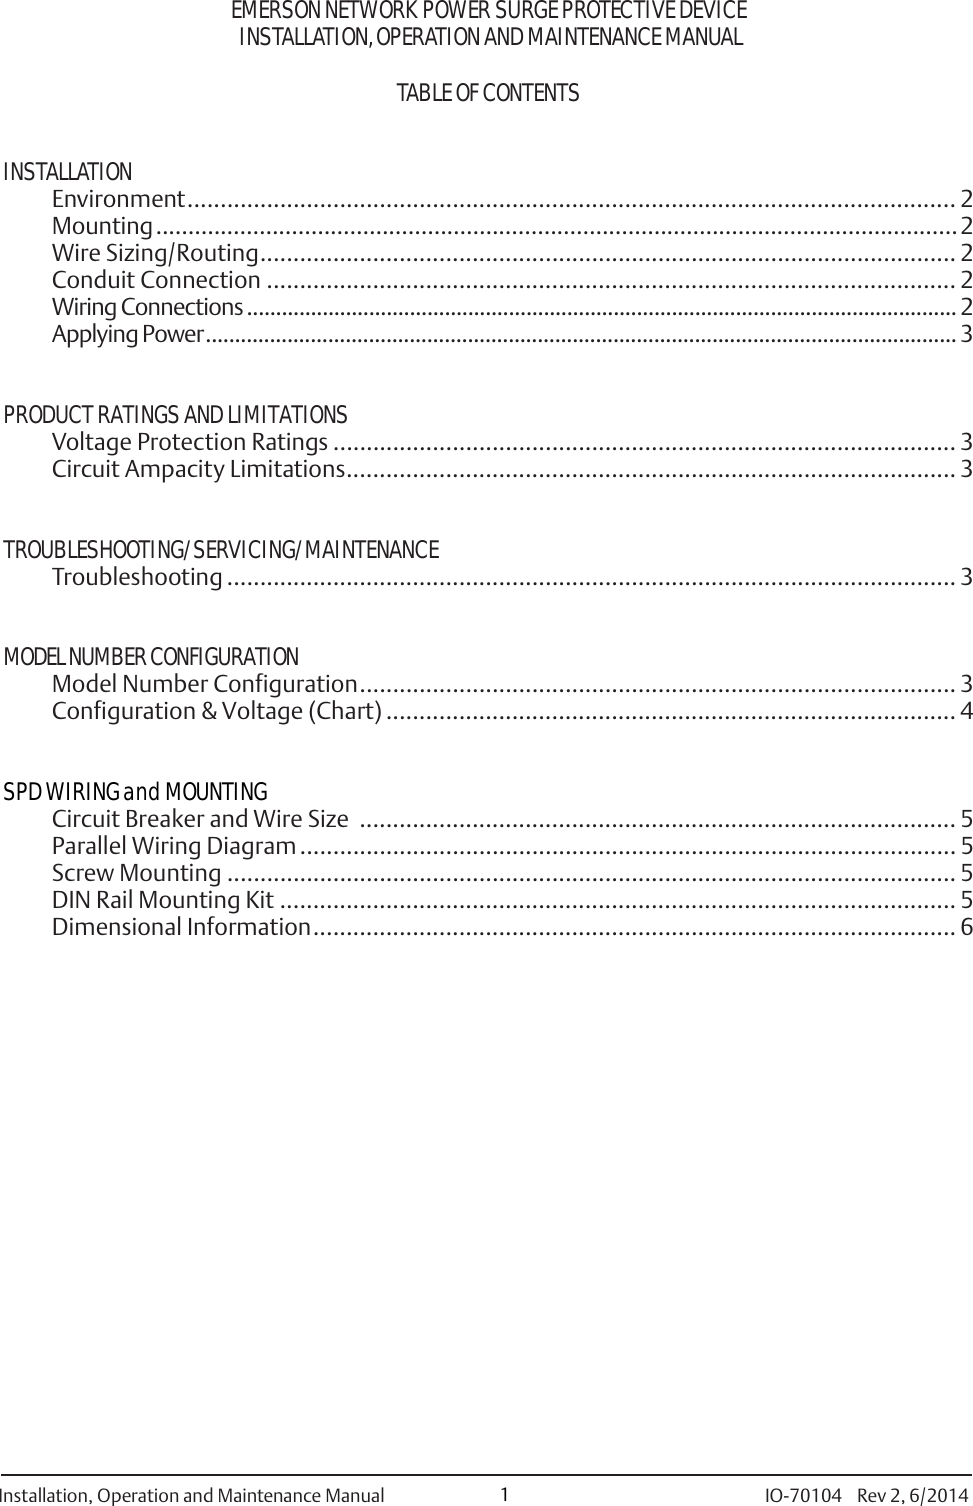 Emerson 420 Surge Protective Device Formerly Powersure Cm Wiring Diagram Page 2 Of 8